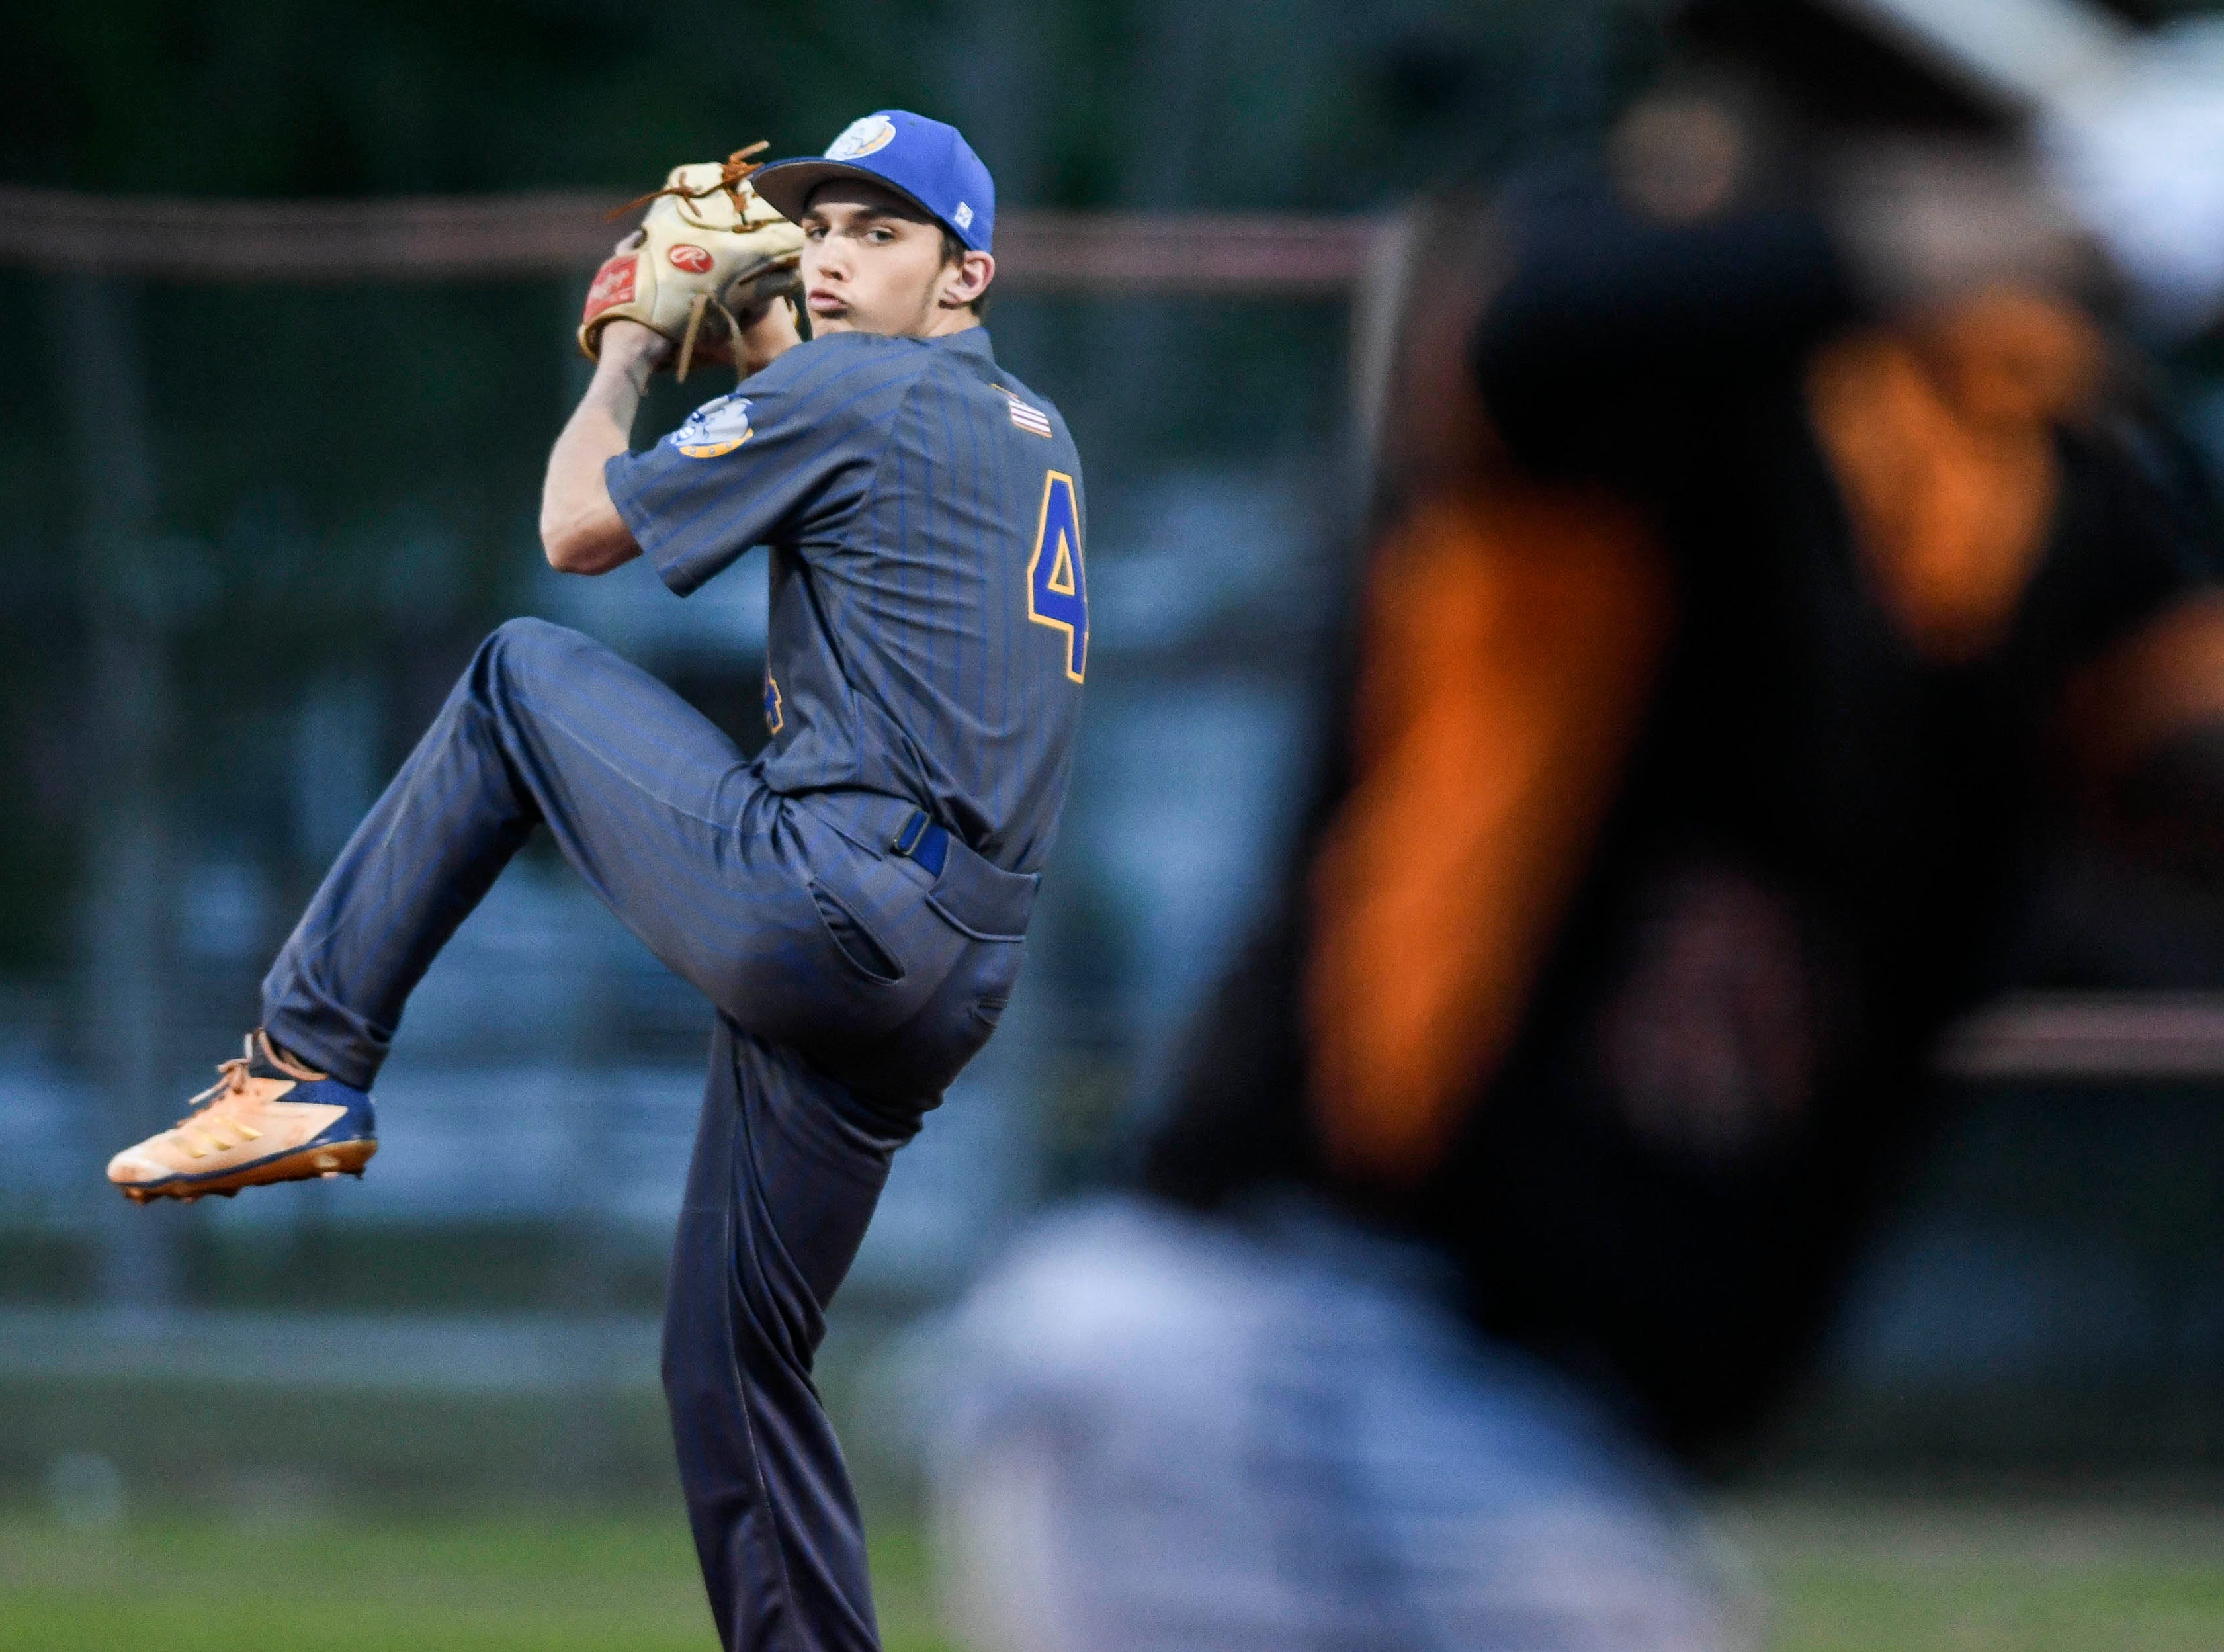 Trey Felker of Titusville pitches during Friday's game against Cocoa